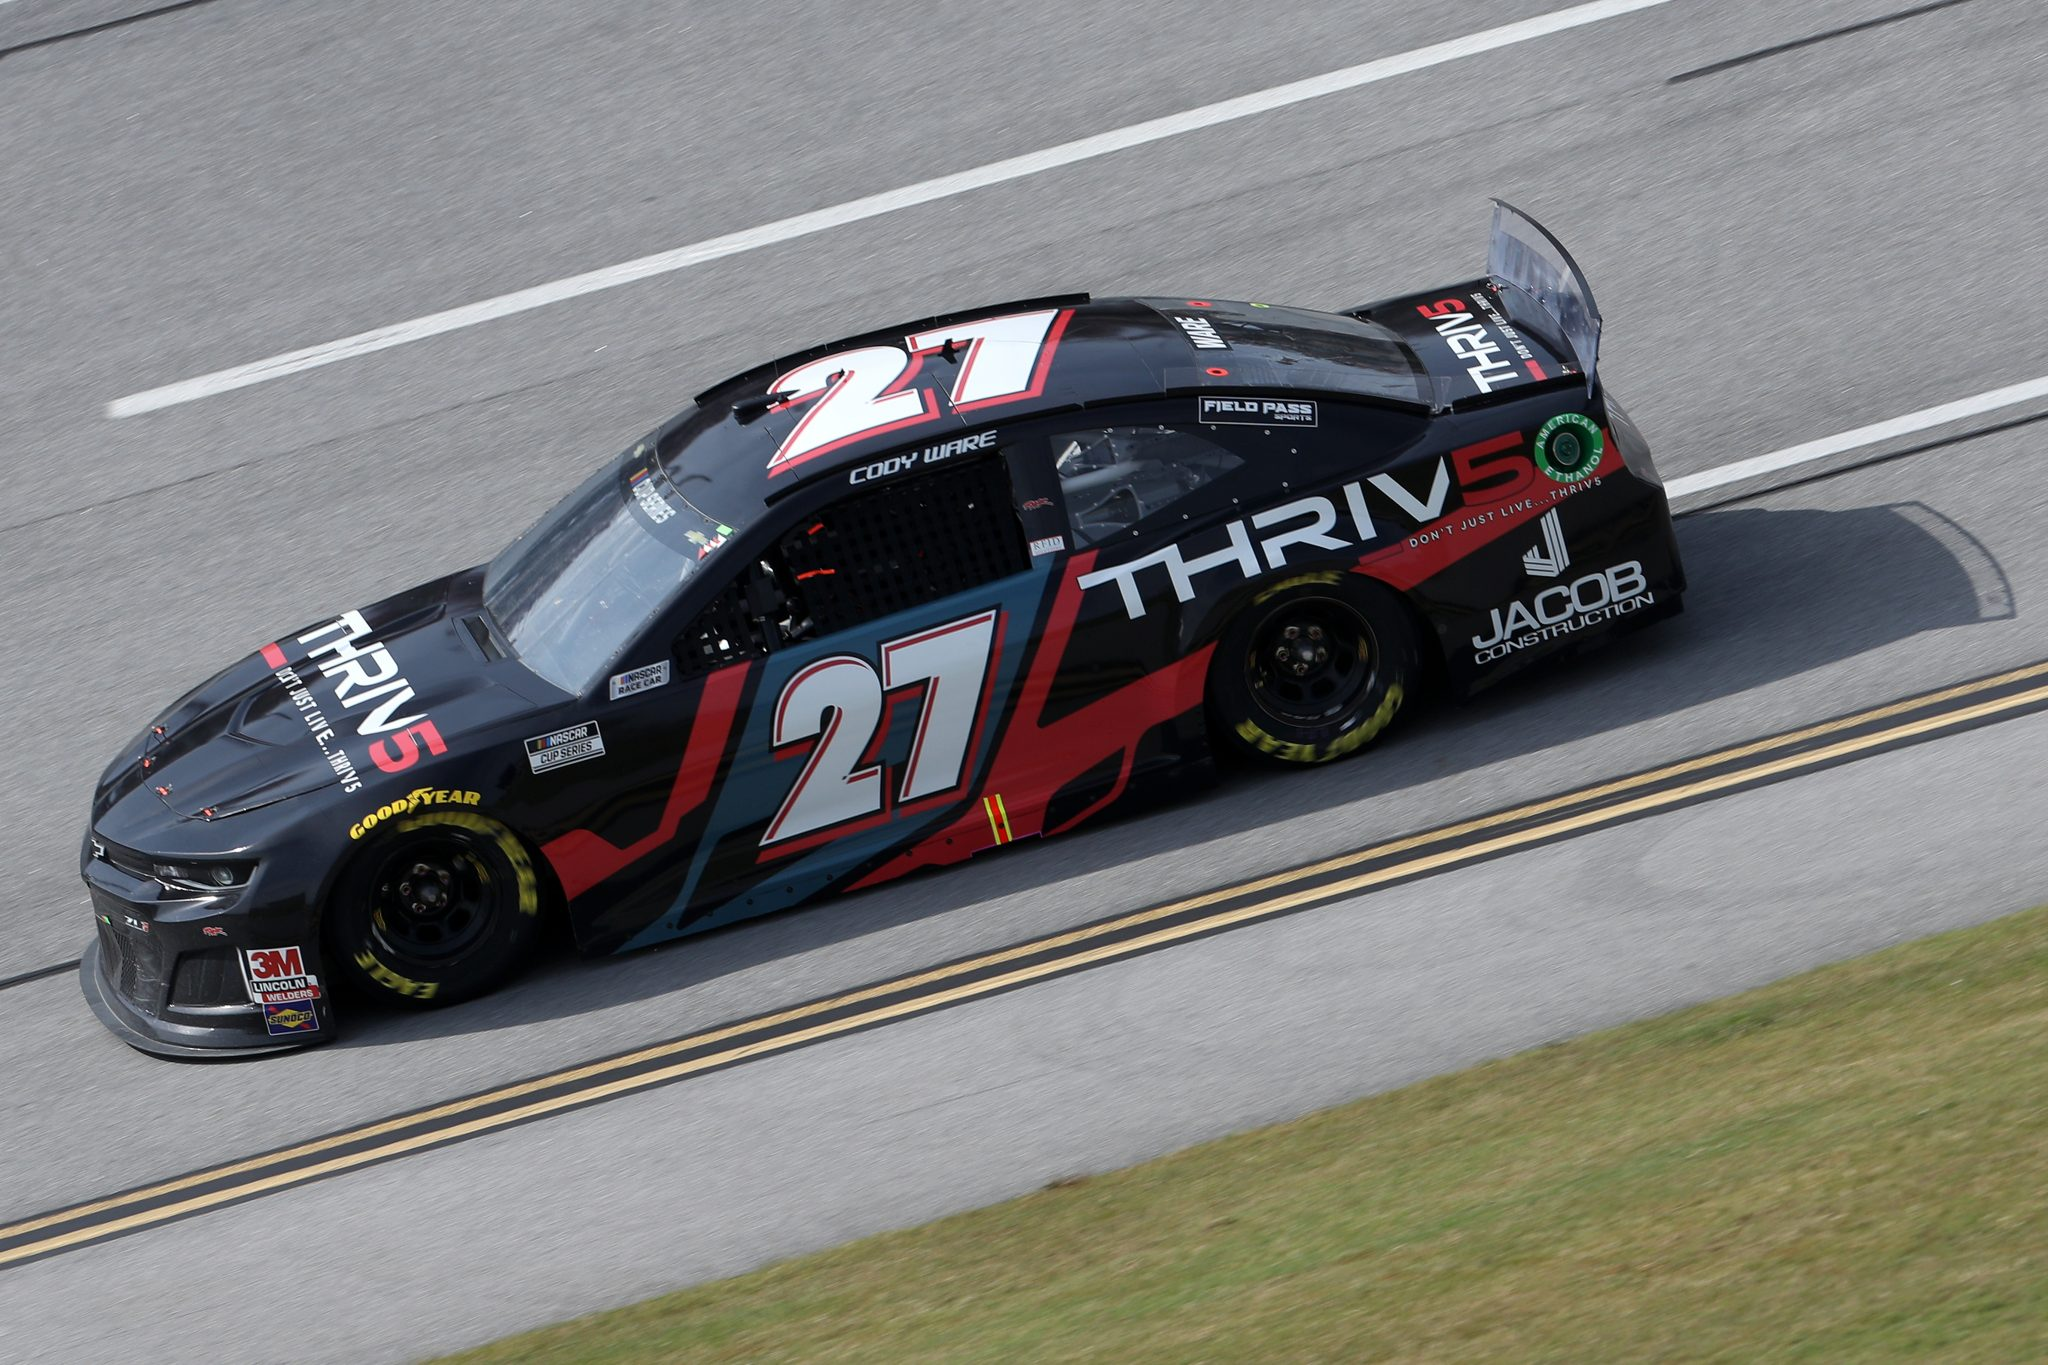 TALLADEGA, ALABAMA - OCTOBER 04: JJ Yeley, driver of the #27 Ford, drives during the NASCAR Cup Series YellaWood 500 at Talladega Superspeedway on October 04, 2020 in Talladega, Alabama. (Photo by Chris Graythen/Getty Images) | Getty Images